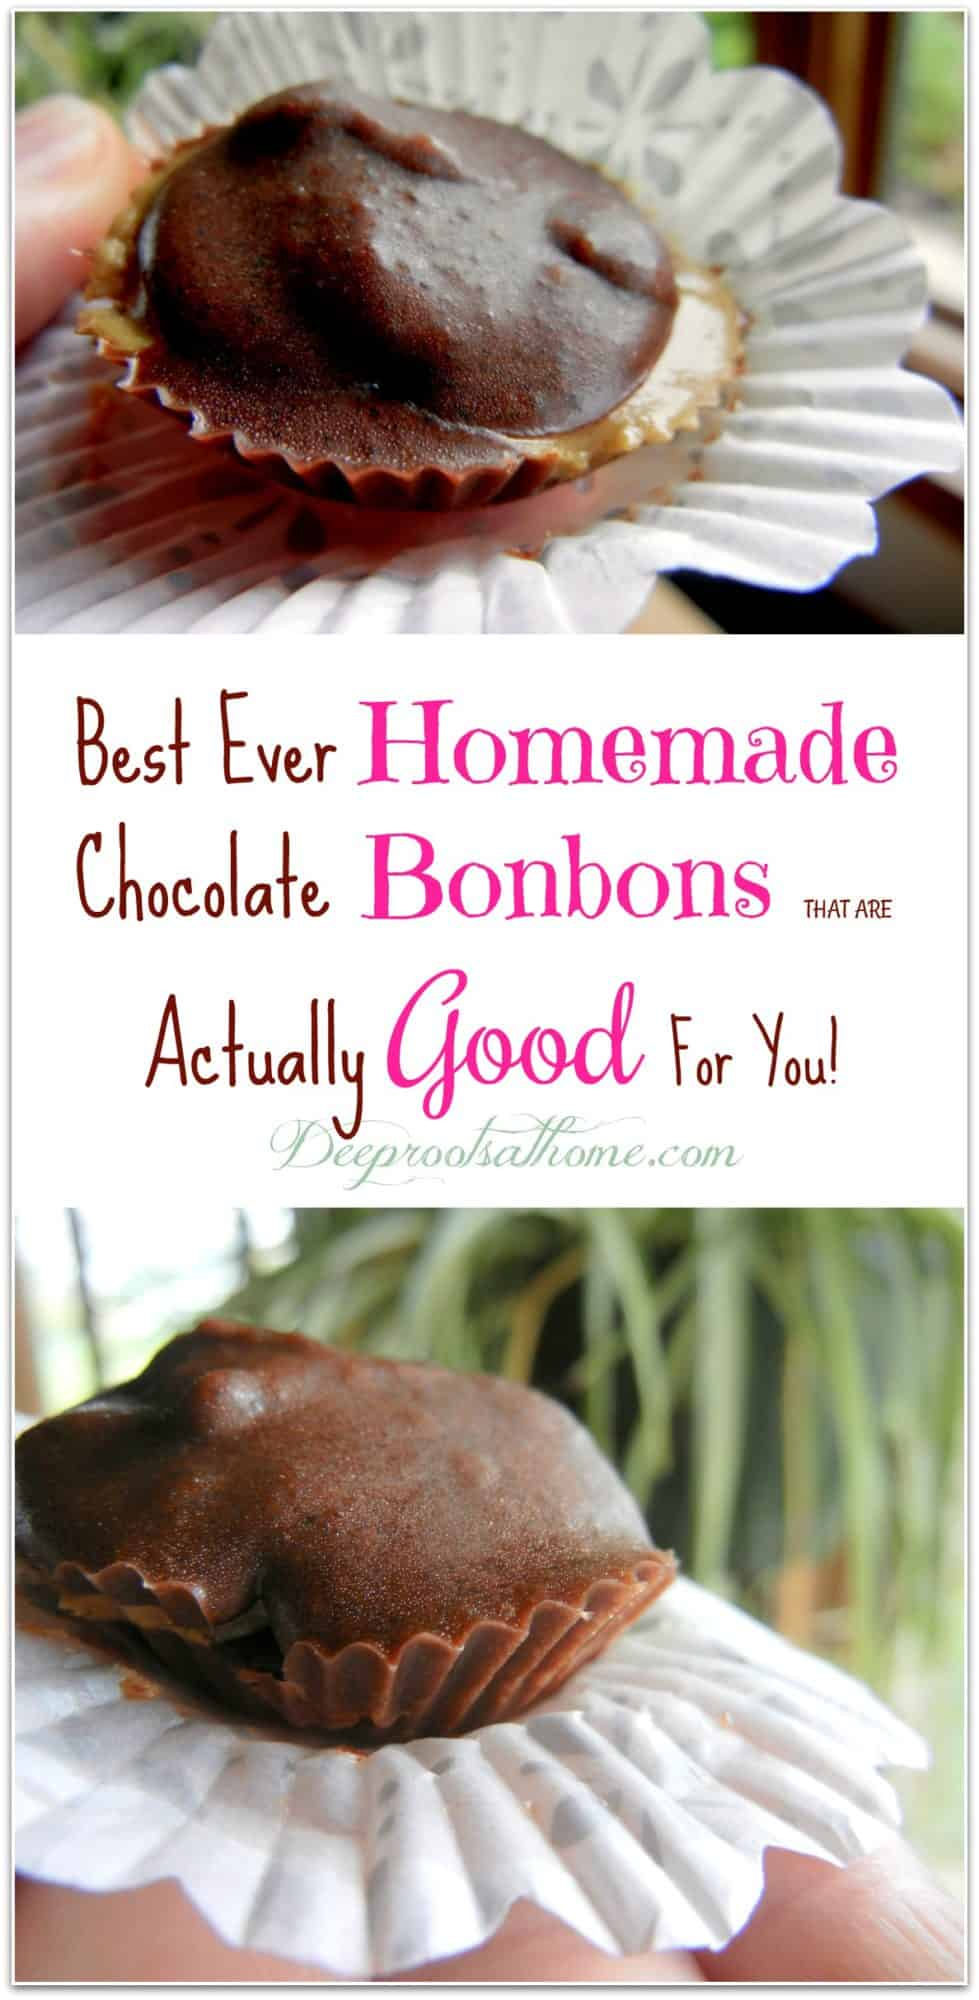 Best Ever Homemade Chocolate Bonbons ~ Actually Good For You, Trader Joe's, taste good, auto-immune symptoms, lupus, food allergies, Reese's cups, mid-afternoon pick-me-up, stabilize blood sugar, processed sugar, putting on weight, getting fat, candida yeast, cacao powder, recipe, tutorial, allergy season, sea salt, unsweetened, candy, dark chocolate, Hand-made, homemade, keeper at home, raw honey, sunflower seed butter, coconut oil, raspberries and chocolate, desserts, healthy, Tropical Traditions, Real Salt, Rapunzel cocoa, organic, French Royal court, chocolate covered candies, redundant word,